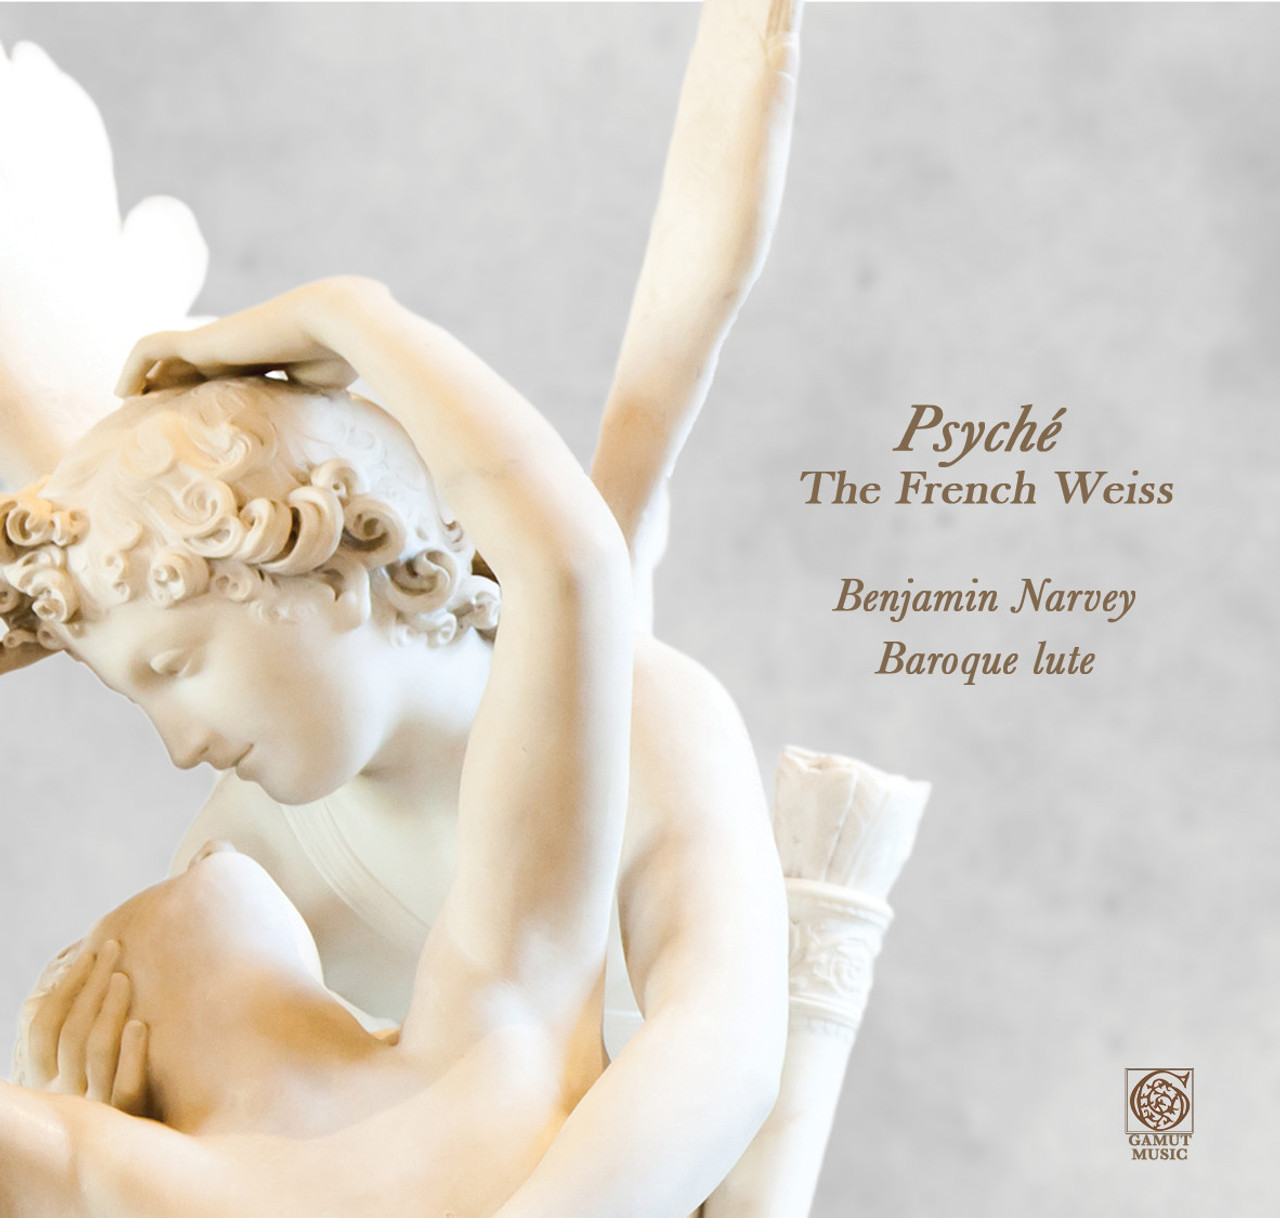 Psyché: The French Weiss